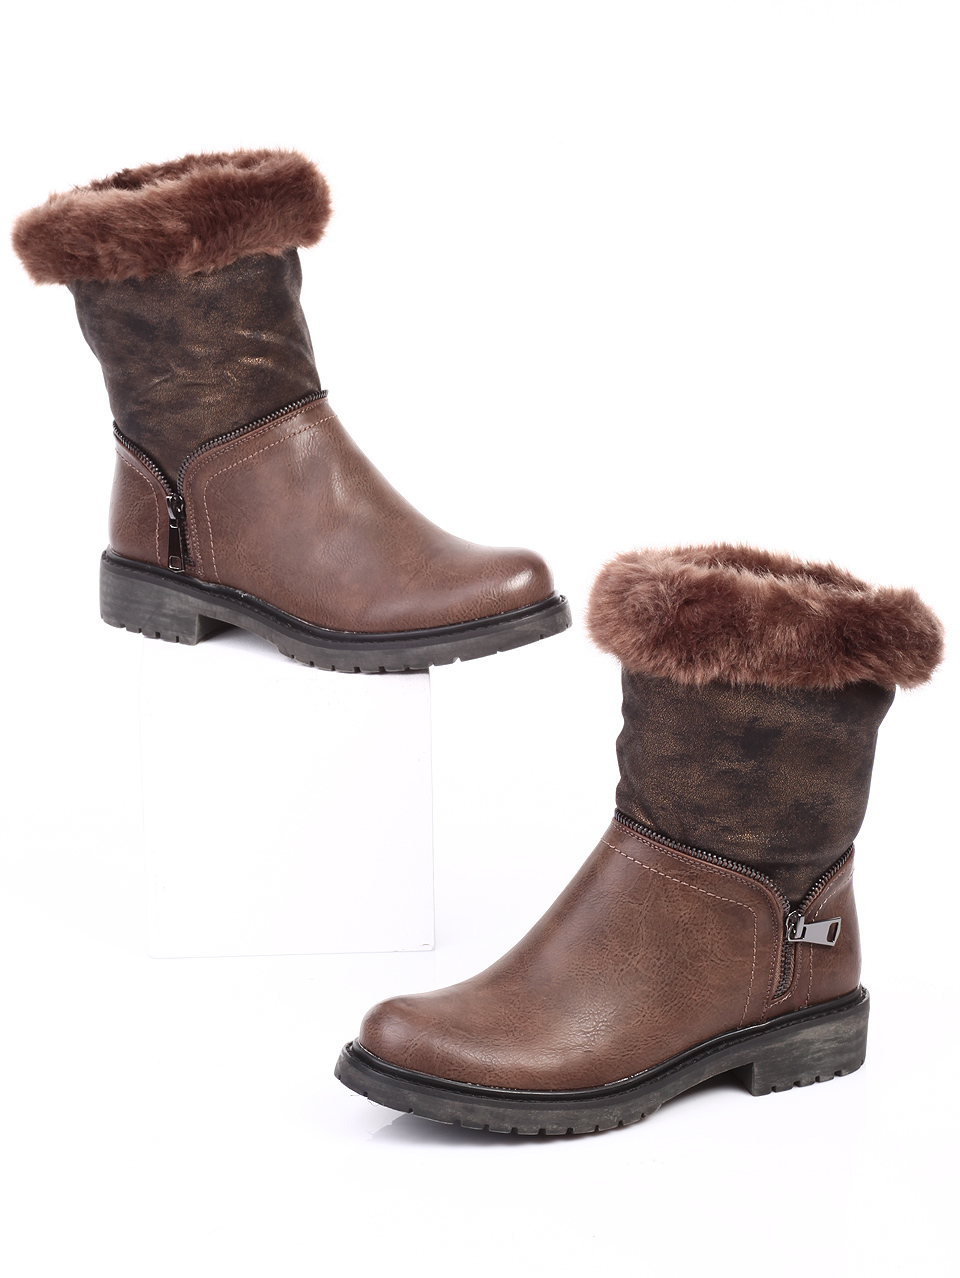 Brown Booties. Brown Boots. Dark Brown Boots. Maroon Brown Boots. Marsala Boots. Winter Boots.